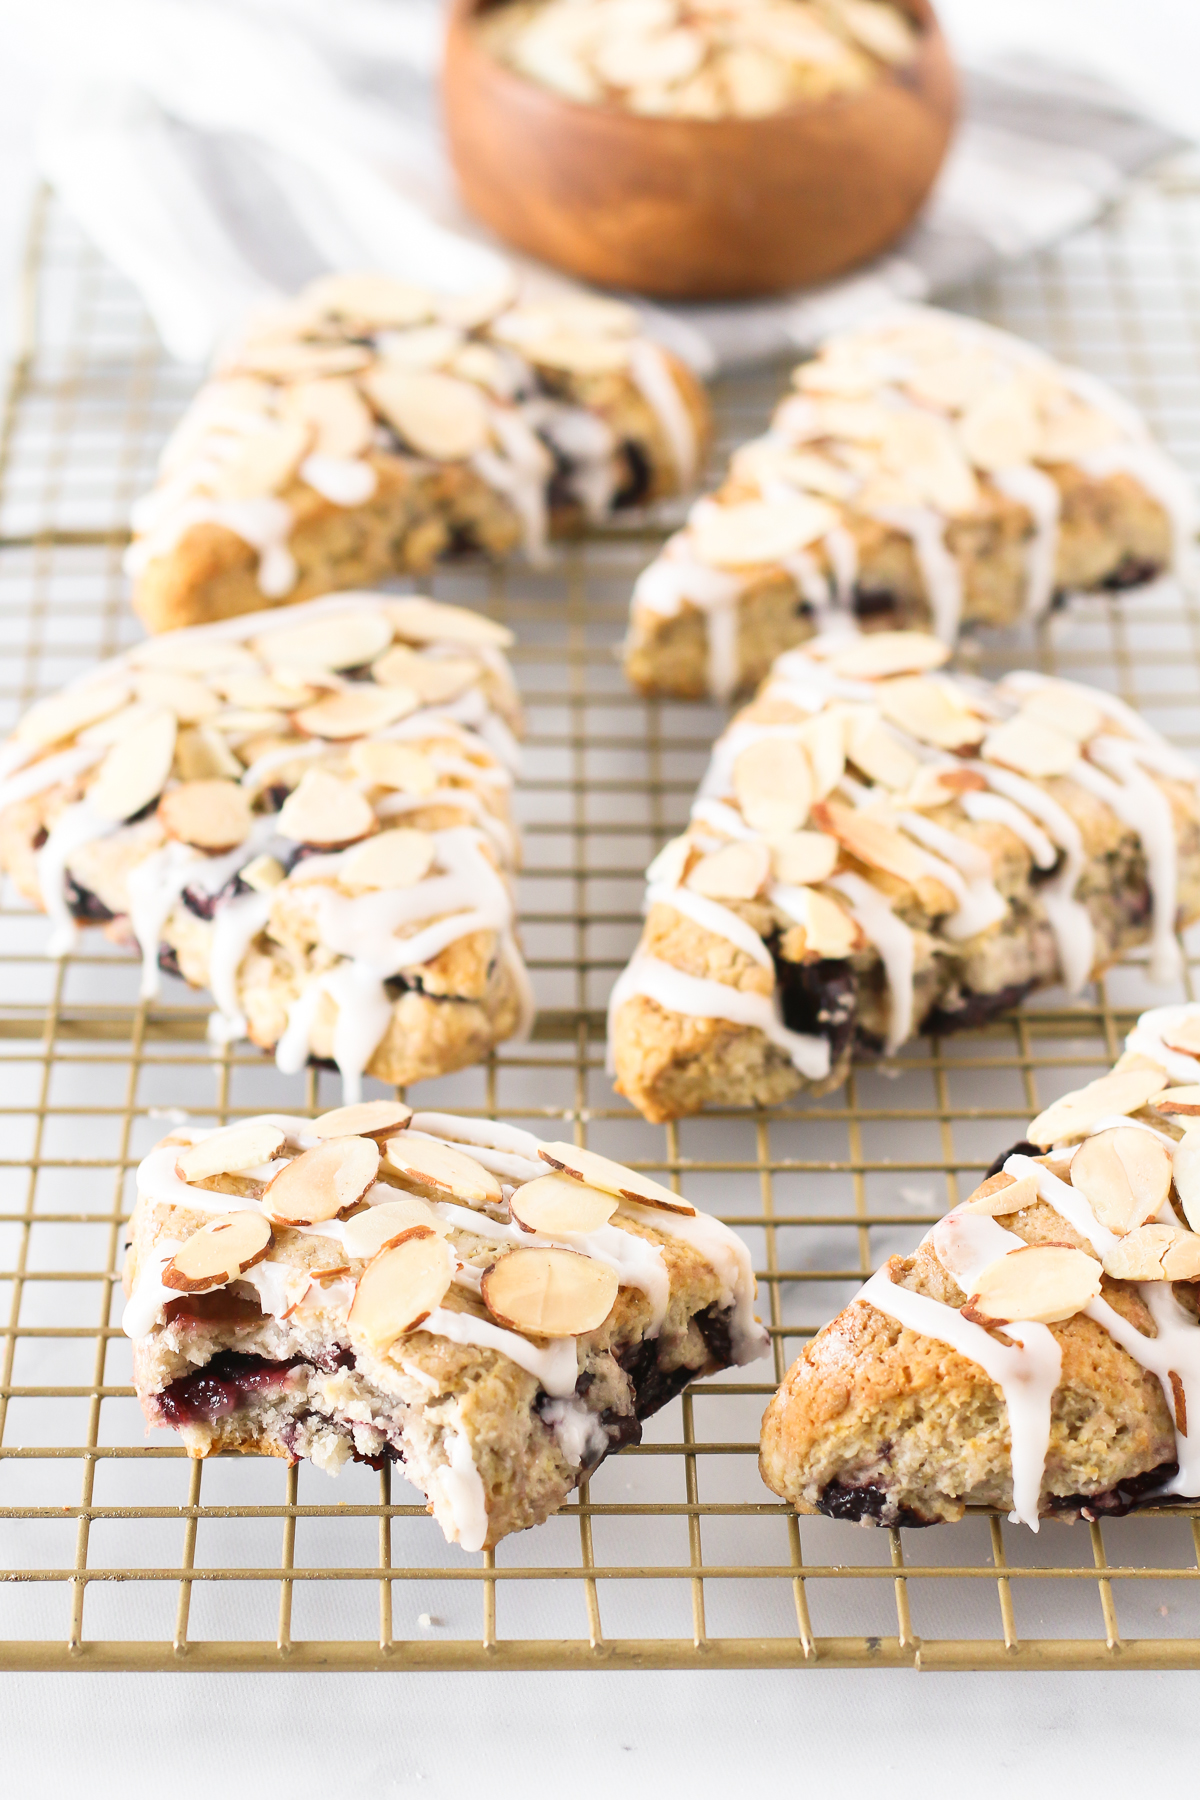 Gluten Free Vegan Cherry Almond Scones. Tender scones with black cherries and toasted almonds. The perfection coffee companion!